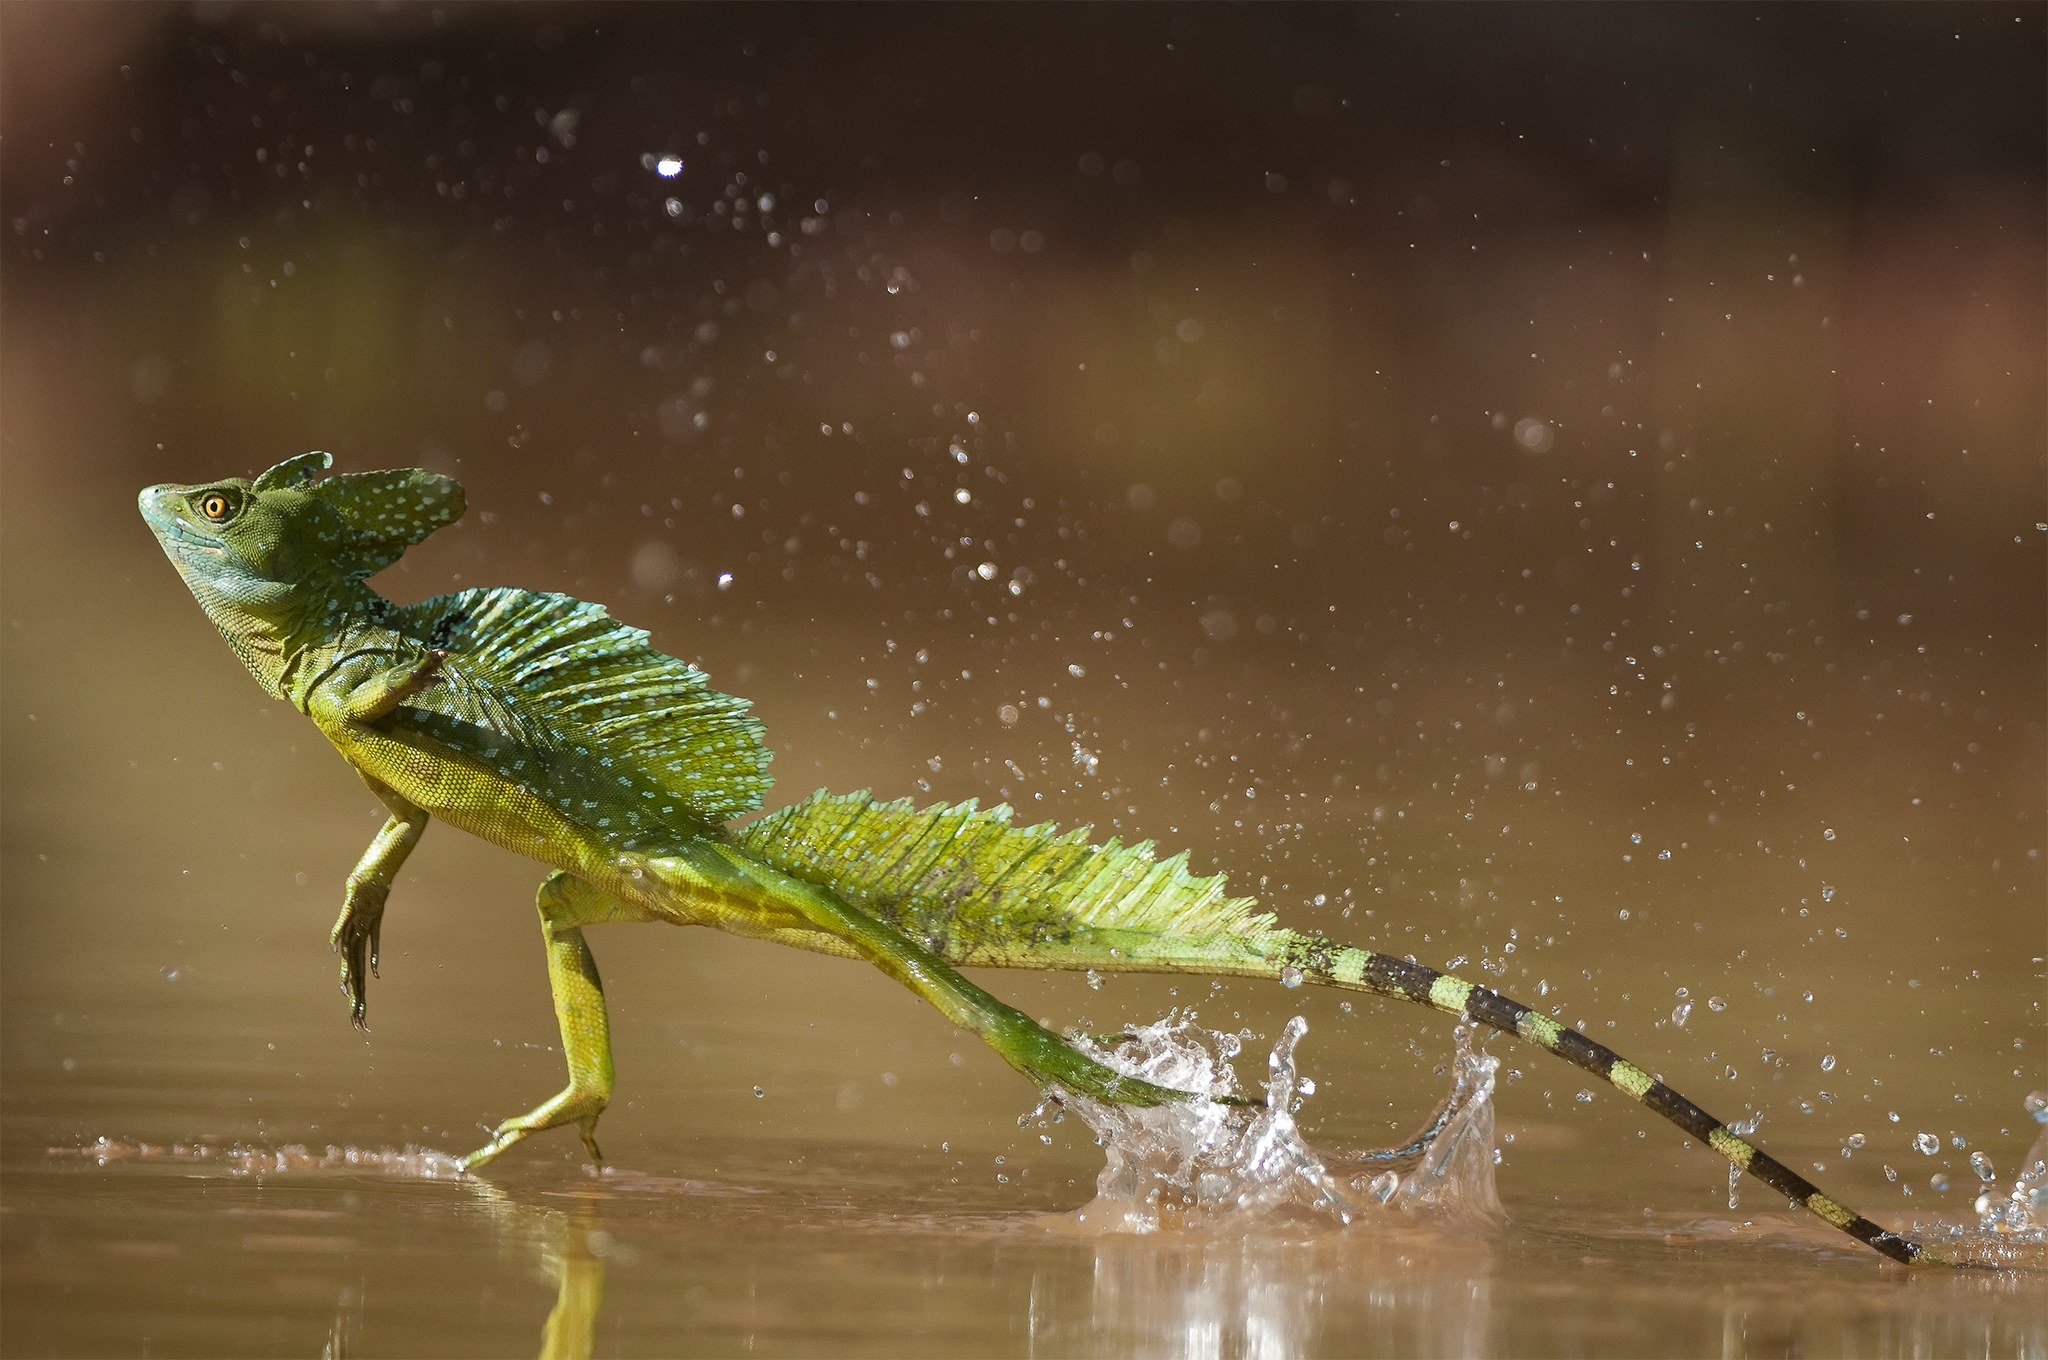 05 Nov 2008, Costa Rica --- Green / Double-crested basilisk (Basiliscus plumifrons) running across water surface, Santa Rita, Costa Rica --- Image by © Bence Mate/Nature Picture Library/Corbis